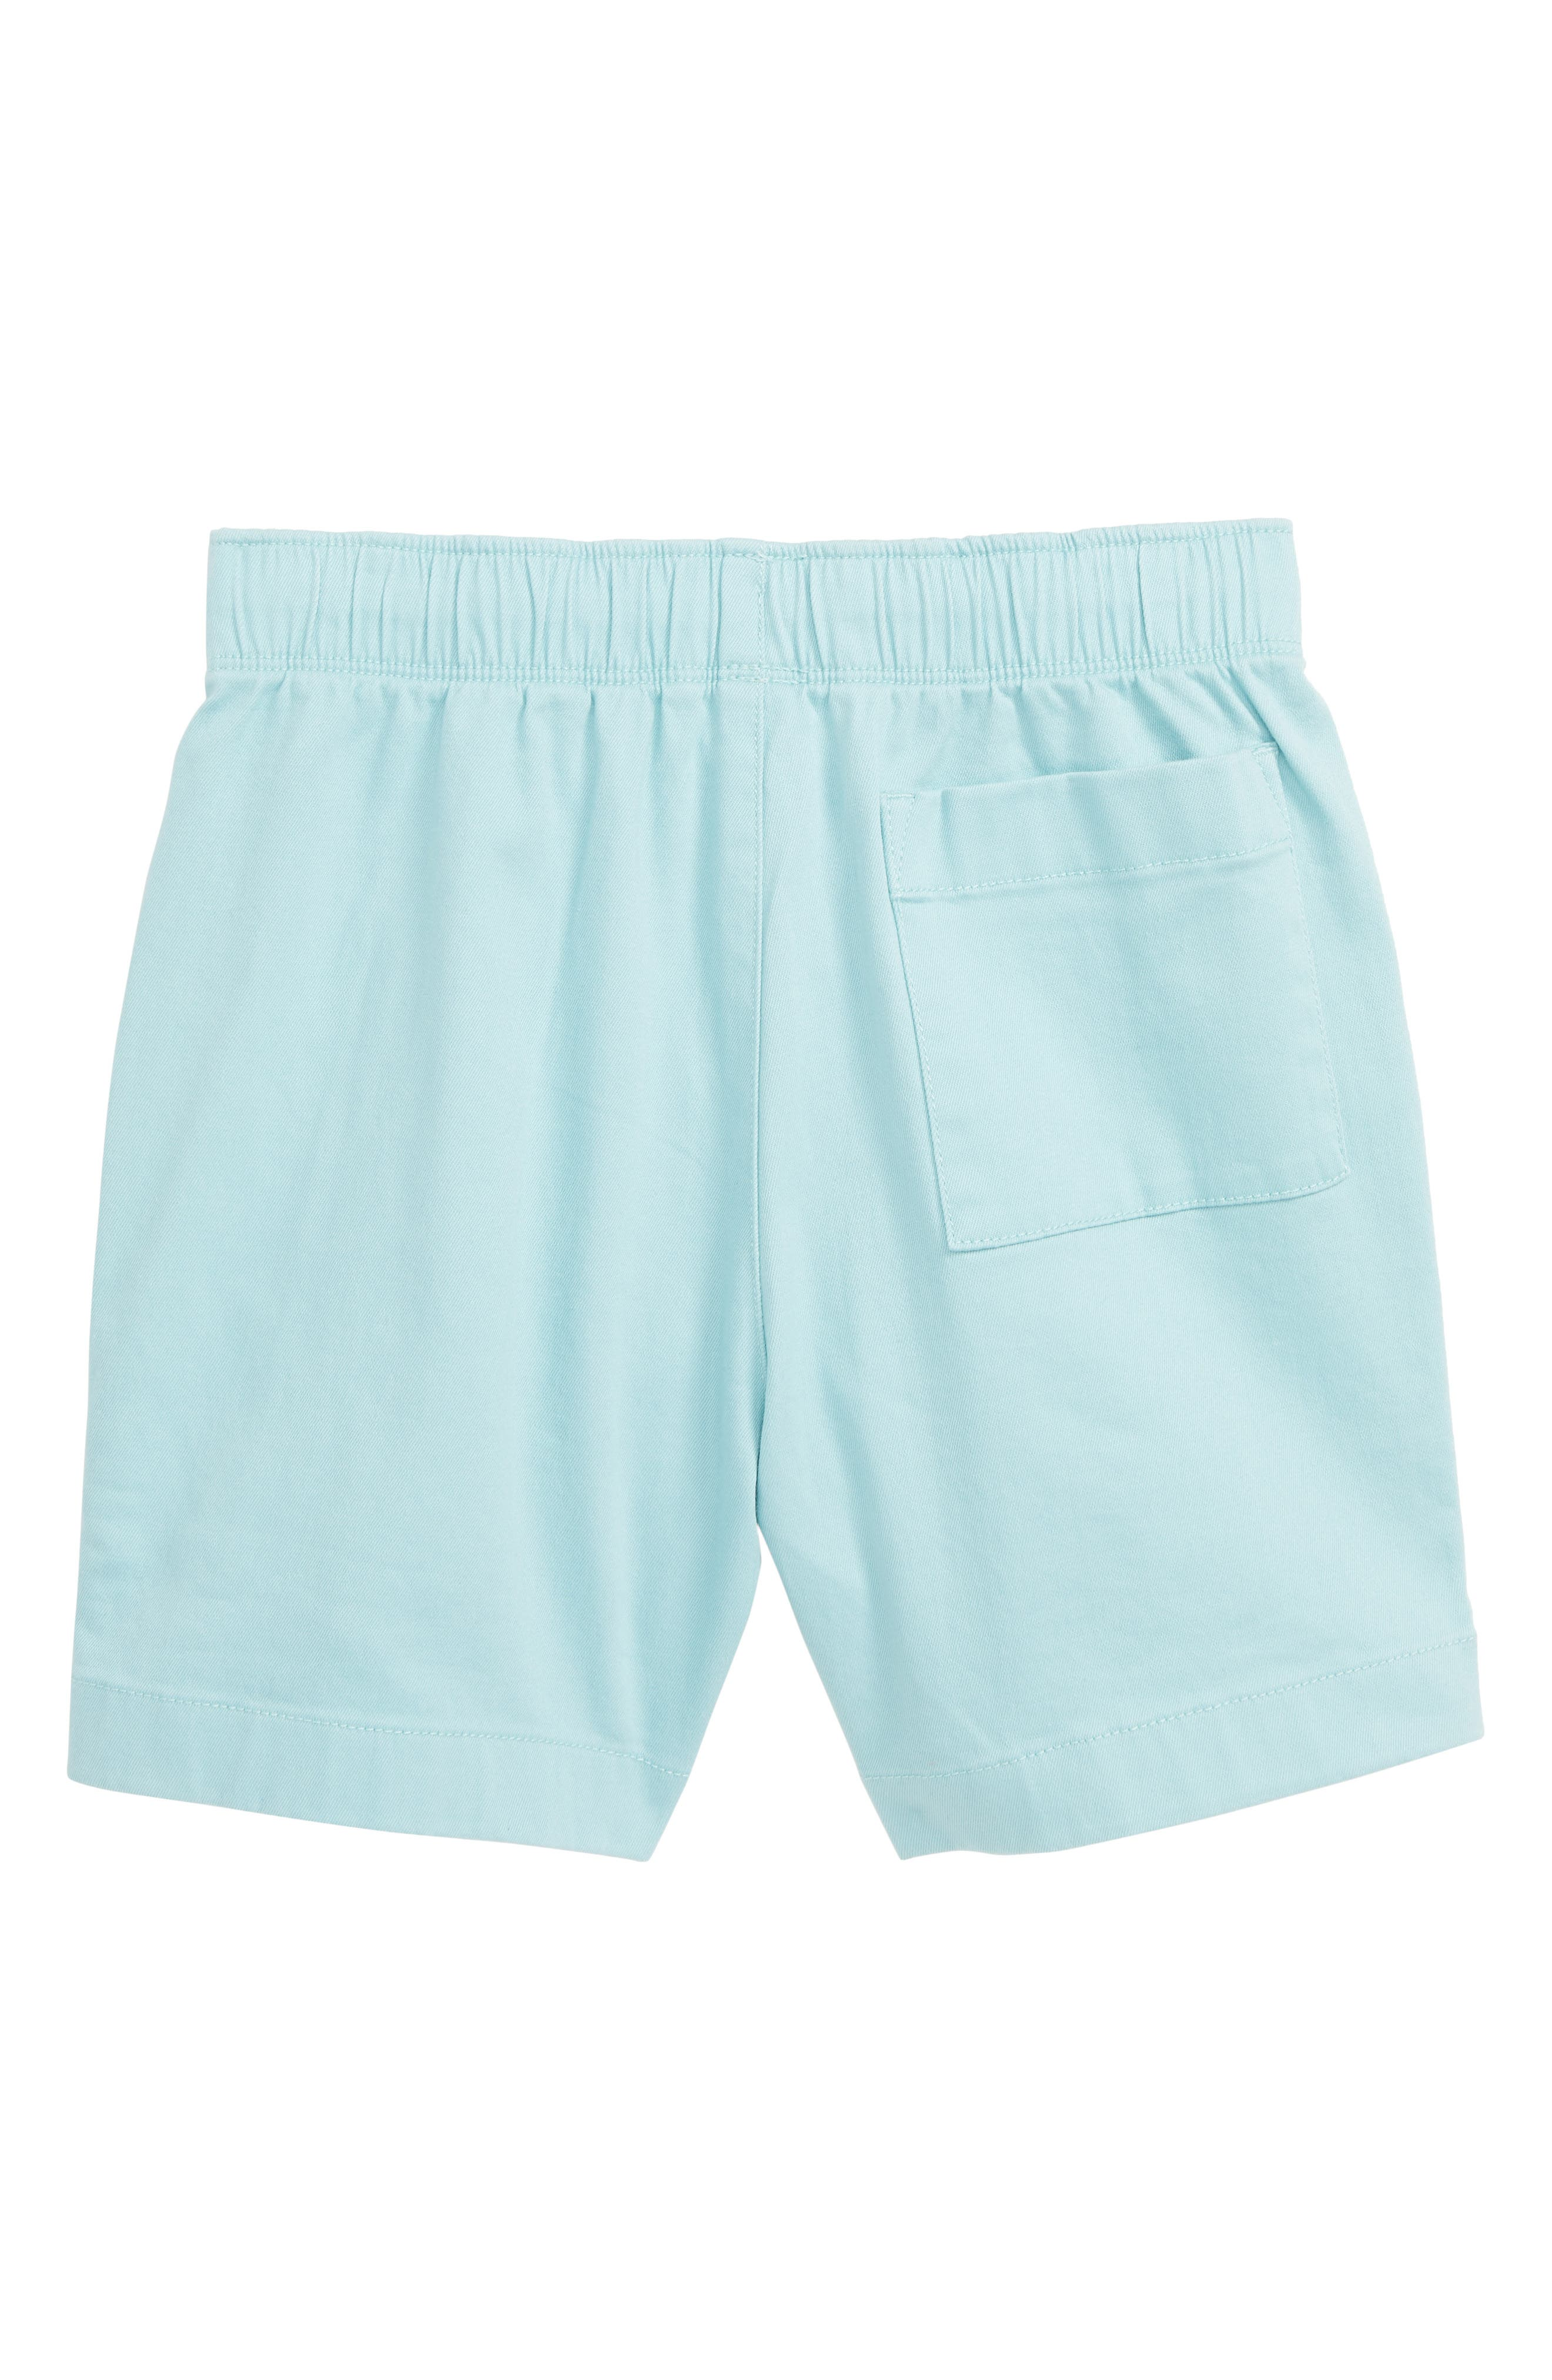 CREWCUTS BY J.CREW,                             Stretch Chino Dock Shorts,                             Alternate thumbnail 2, color,                             DEEP SPEARMINT